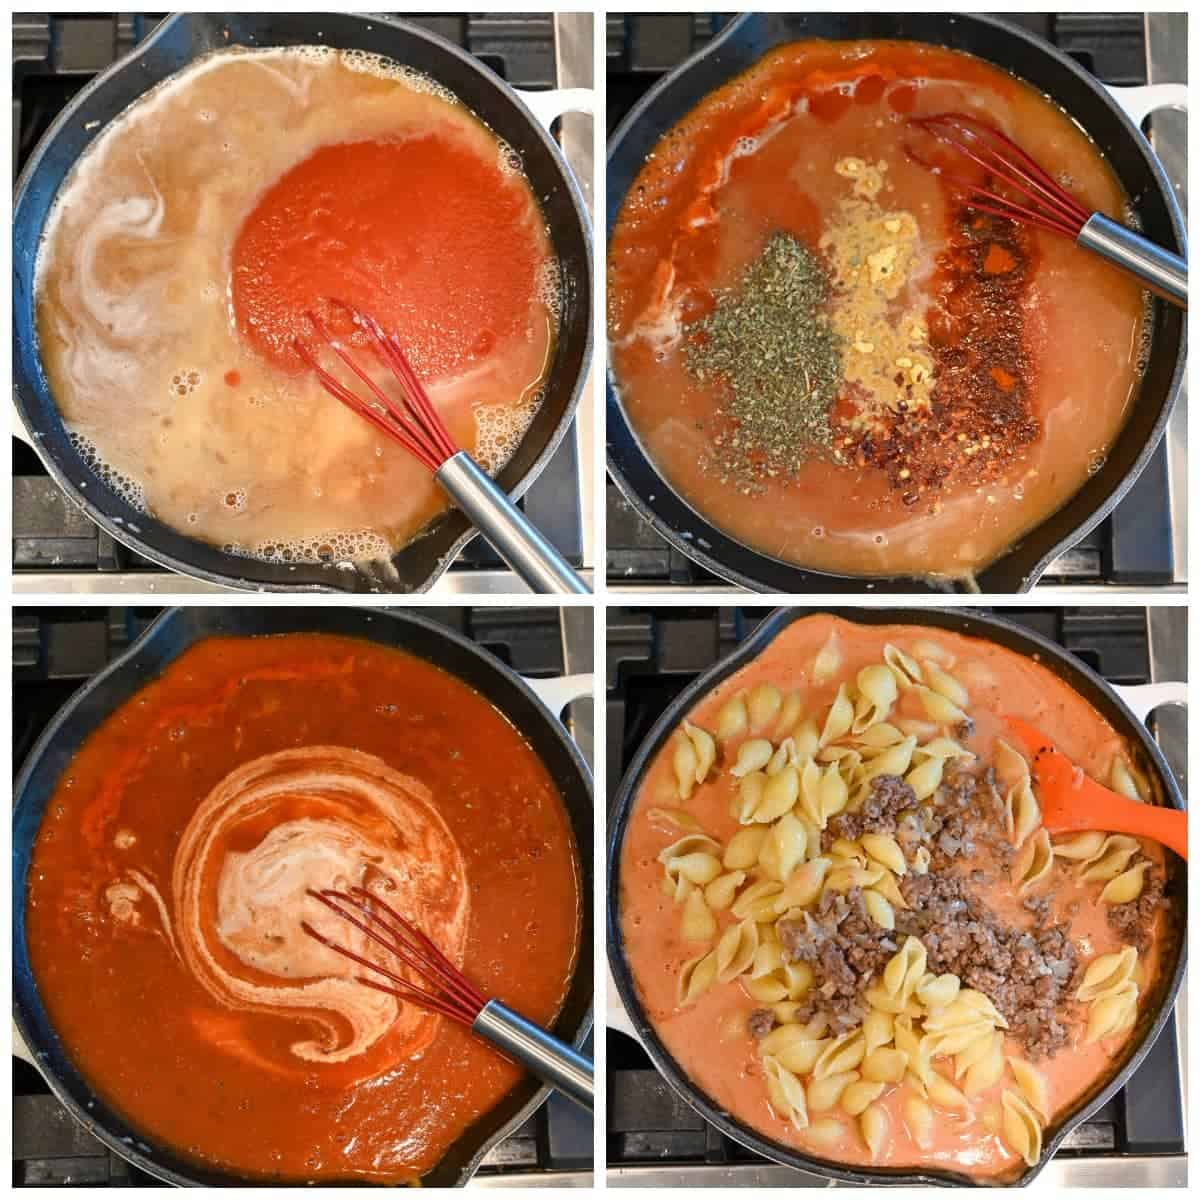 Four process photos. First one, tomato sauce is whisked in. The second one, Italian seasoning, paprika, dry mustard and red pepper being added. Third one, heavr cream poured in. Fourth one, cooked pasta and ground beef mixed into the sauce.